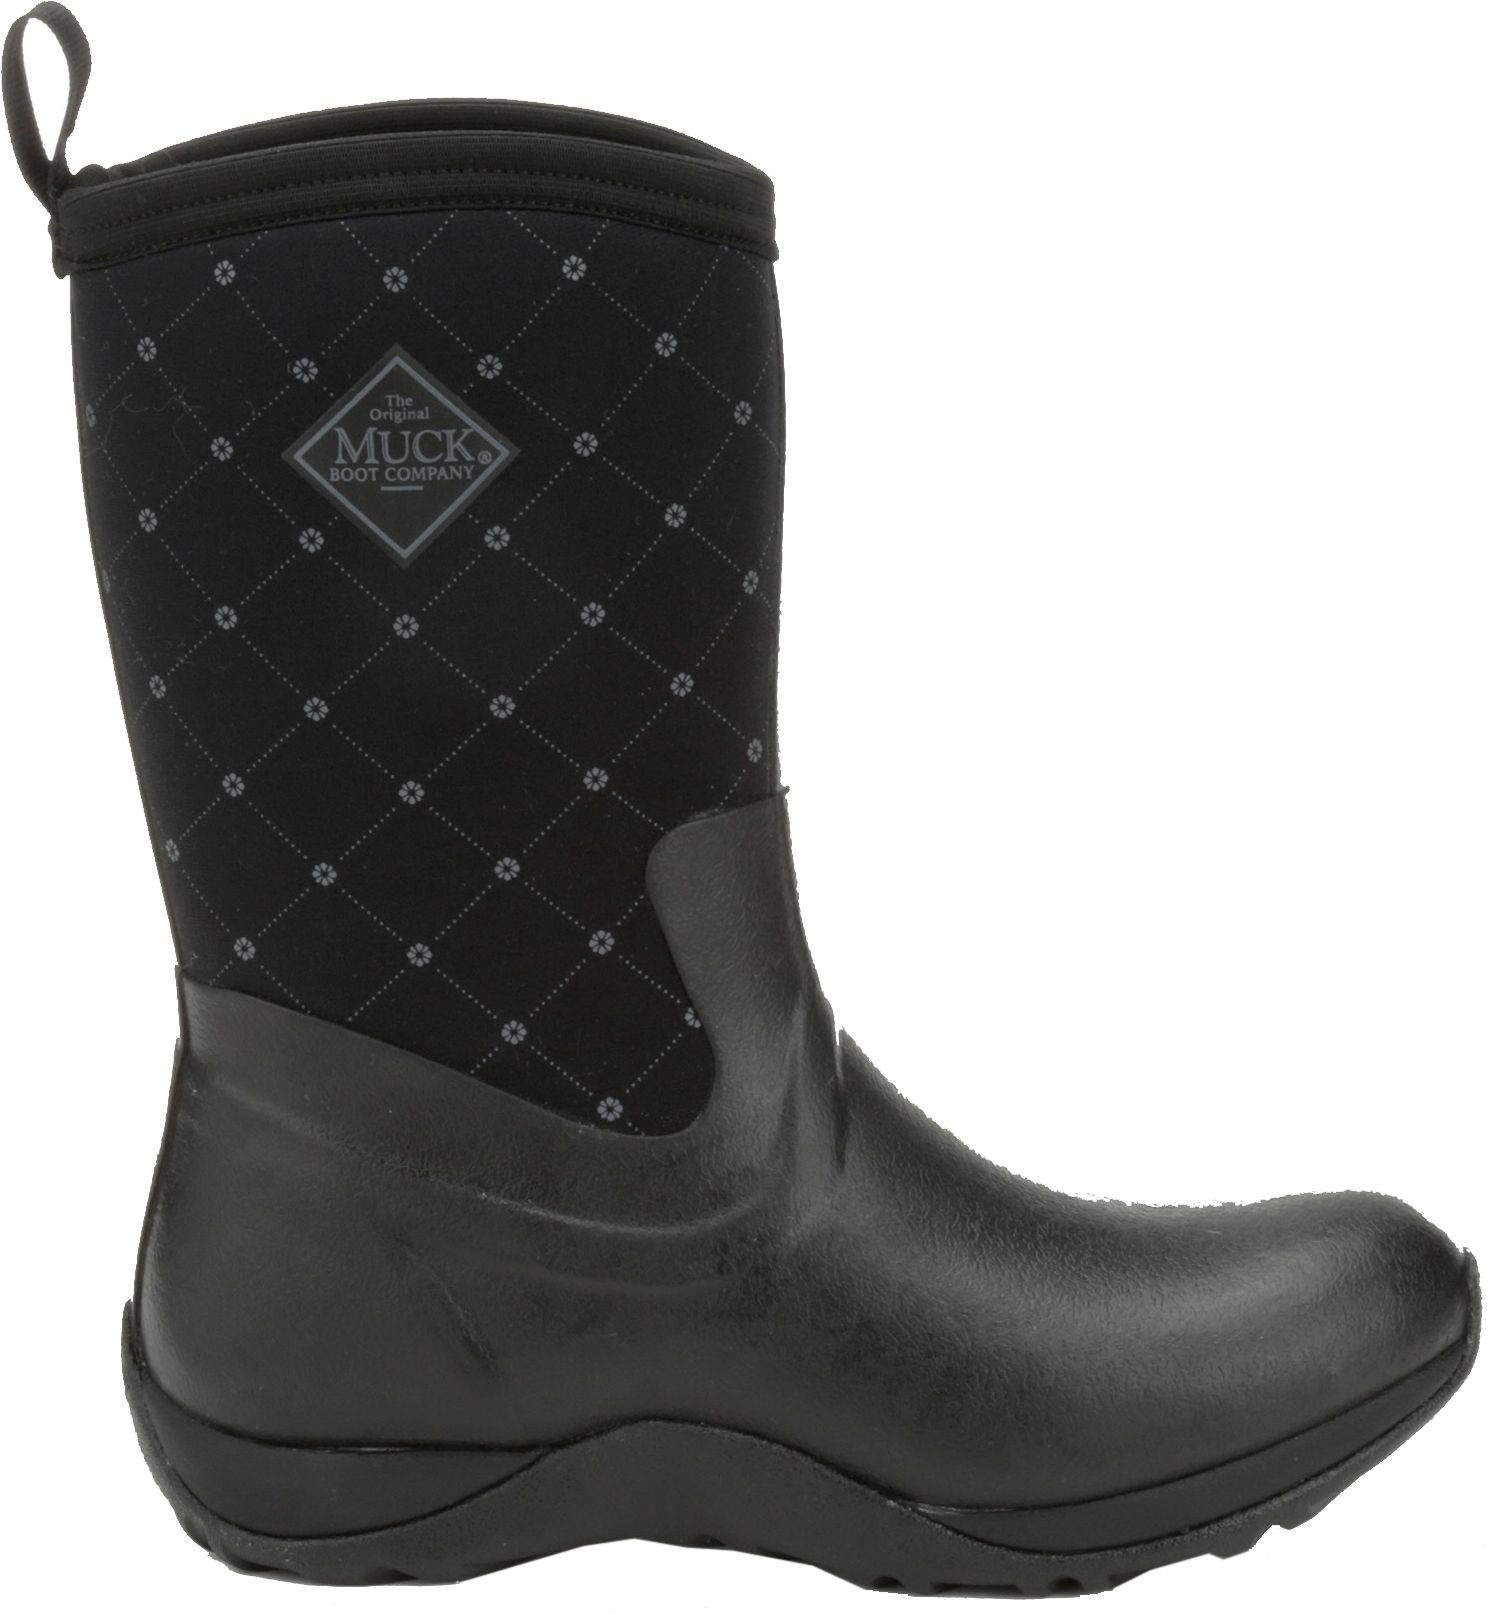 Muck Boots Women's Arctic Weekend Winter Boots| DICK'S Sporting Goods